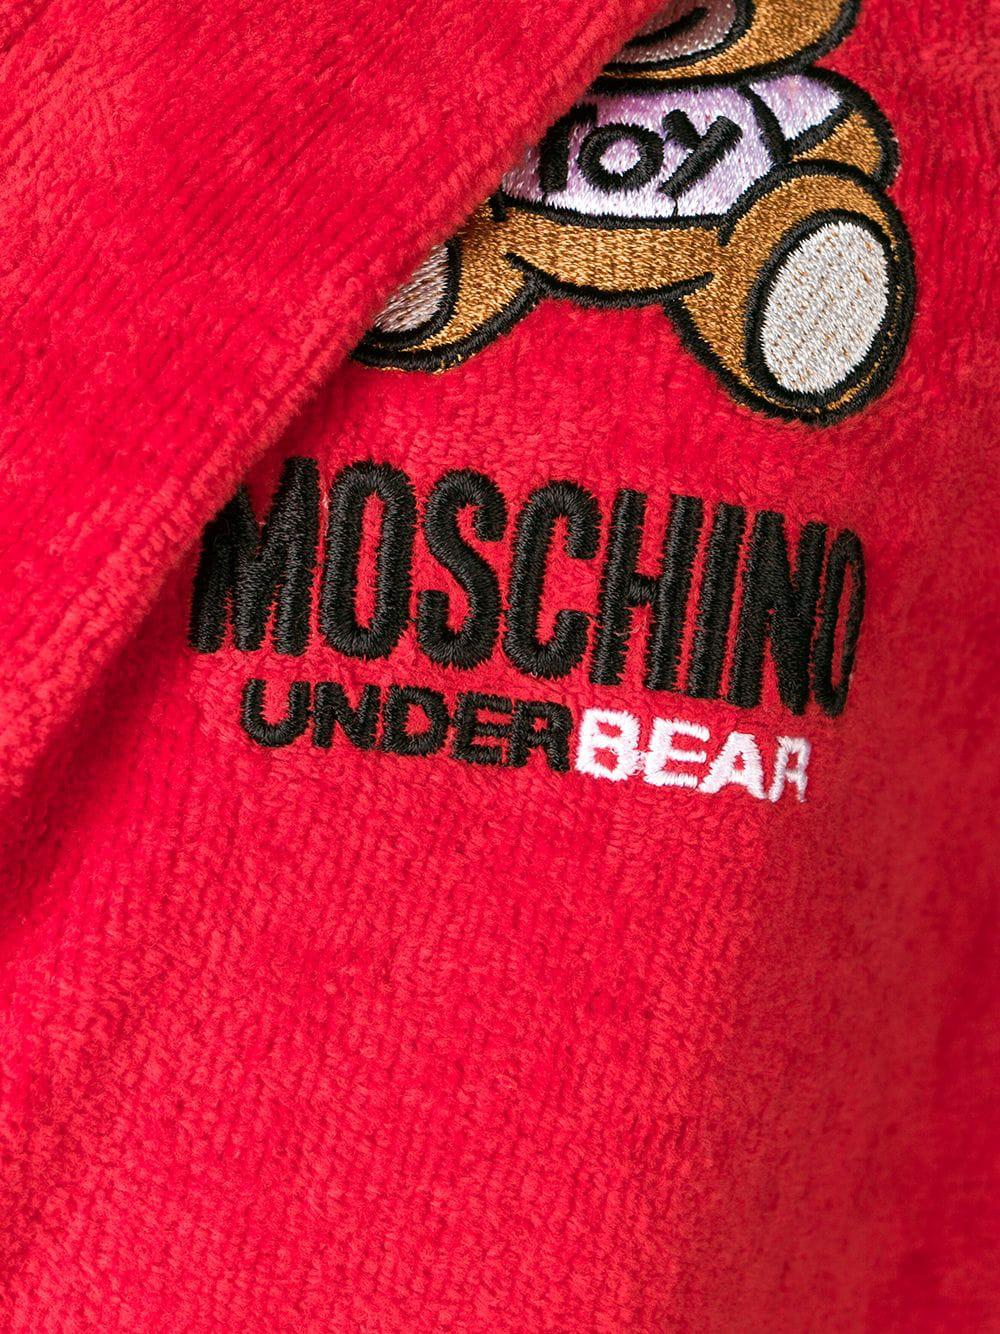 Lyst - Moschino Teddy Underbear Bathrobe in Red 759aae5d2